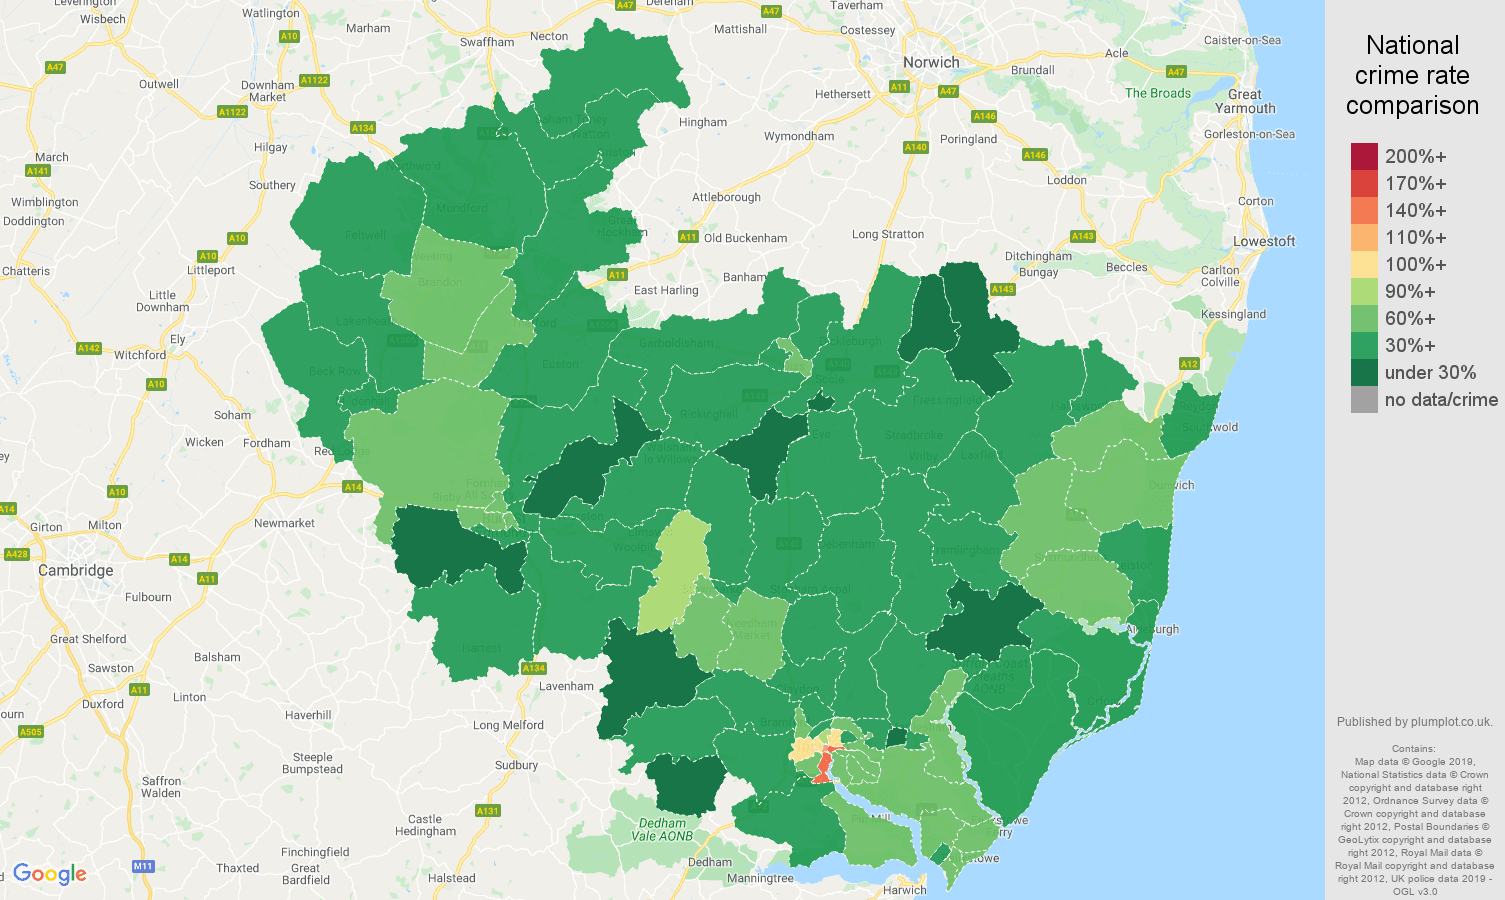 Ipswich other theft crime rate comparison map